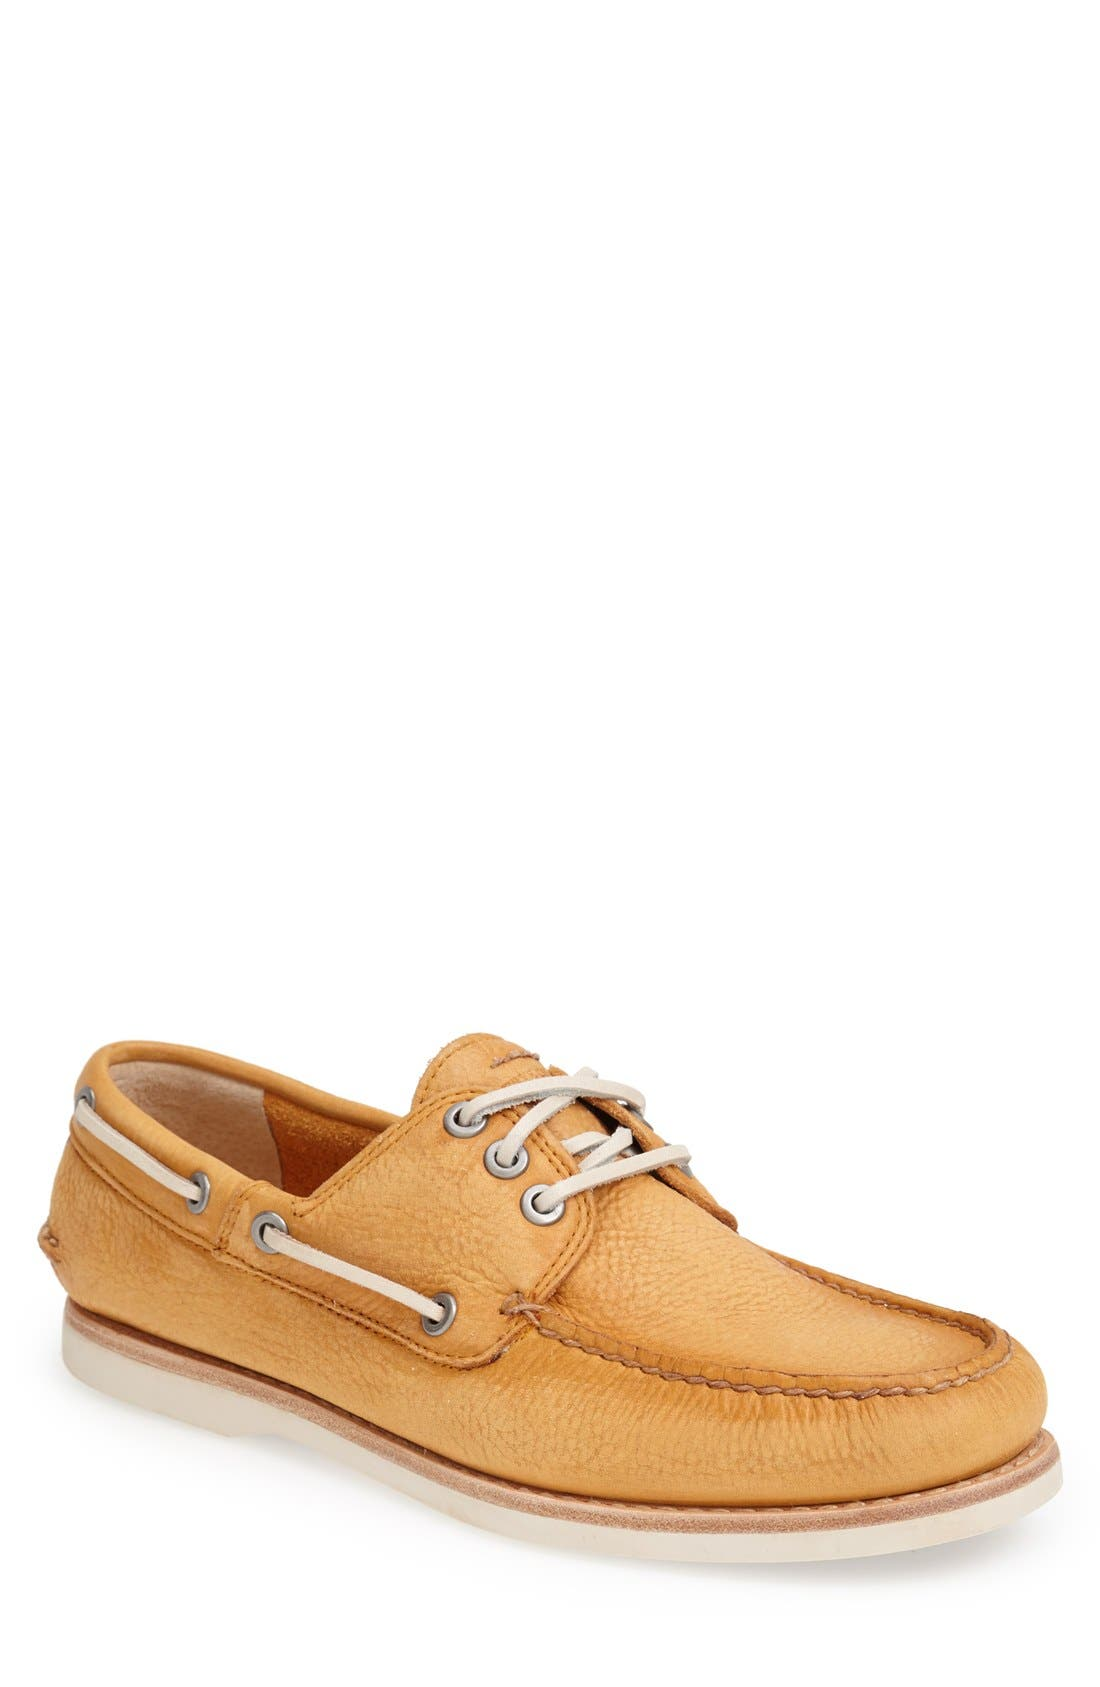 Alternate Image 1 Selected - Frye 'Sully' Leather Boat Shoe